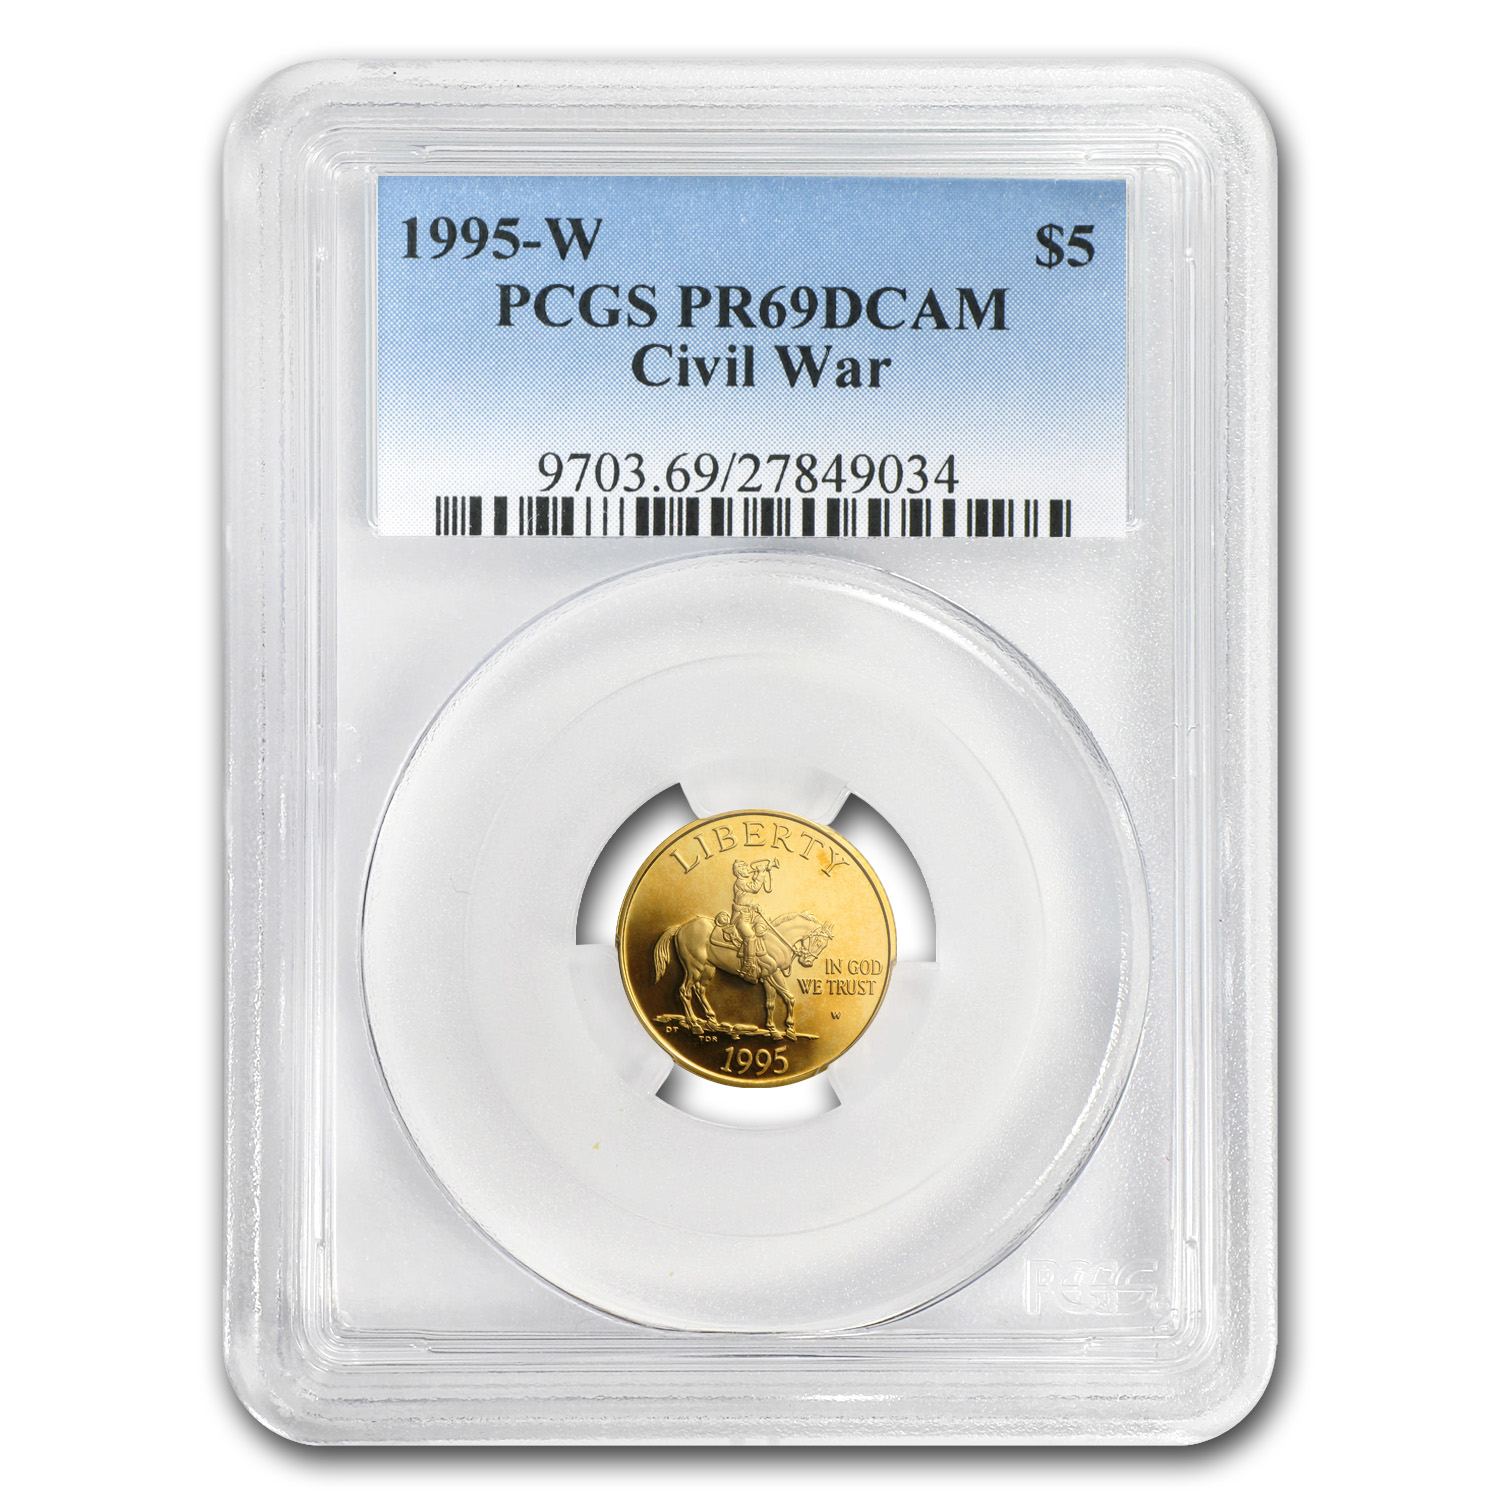 1995-W Gold $5 Commemorative Civil War PR-69 PCGS